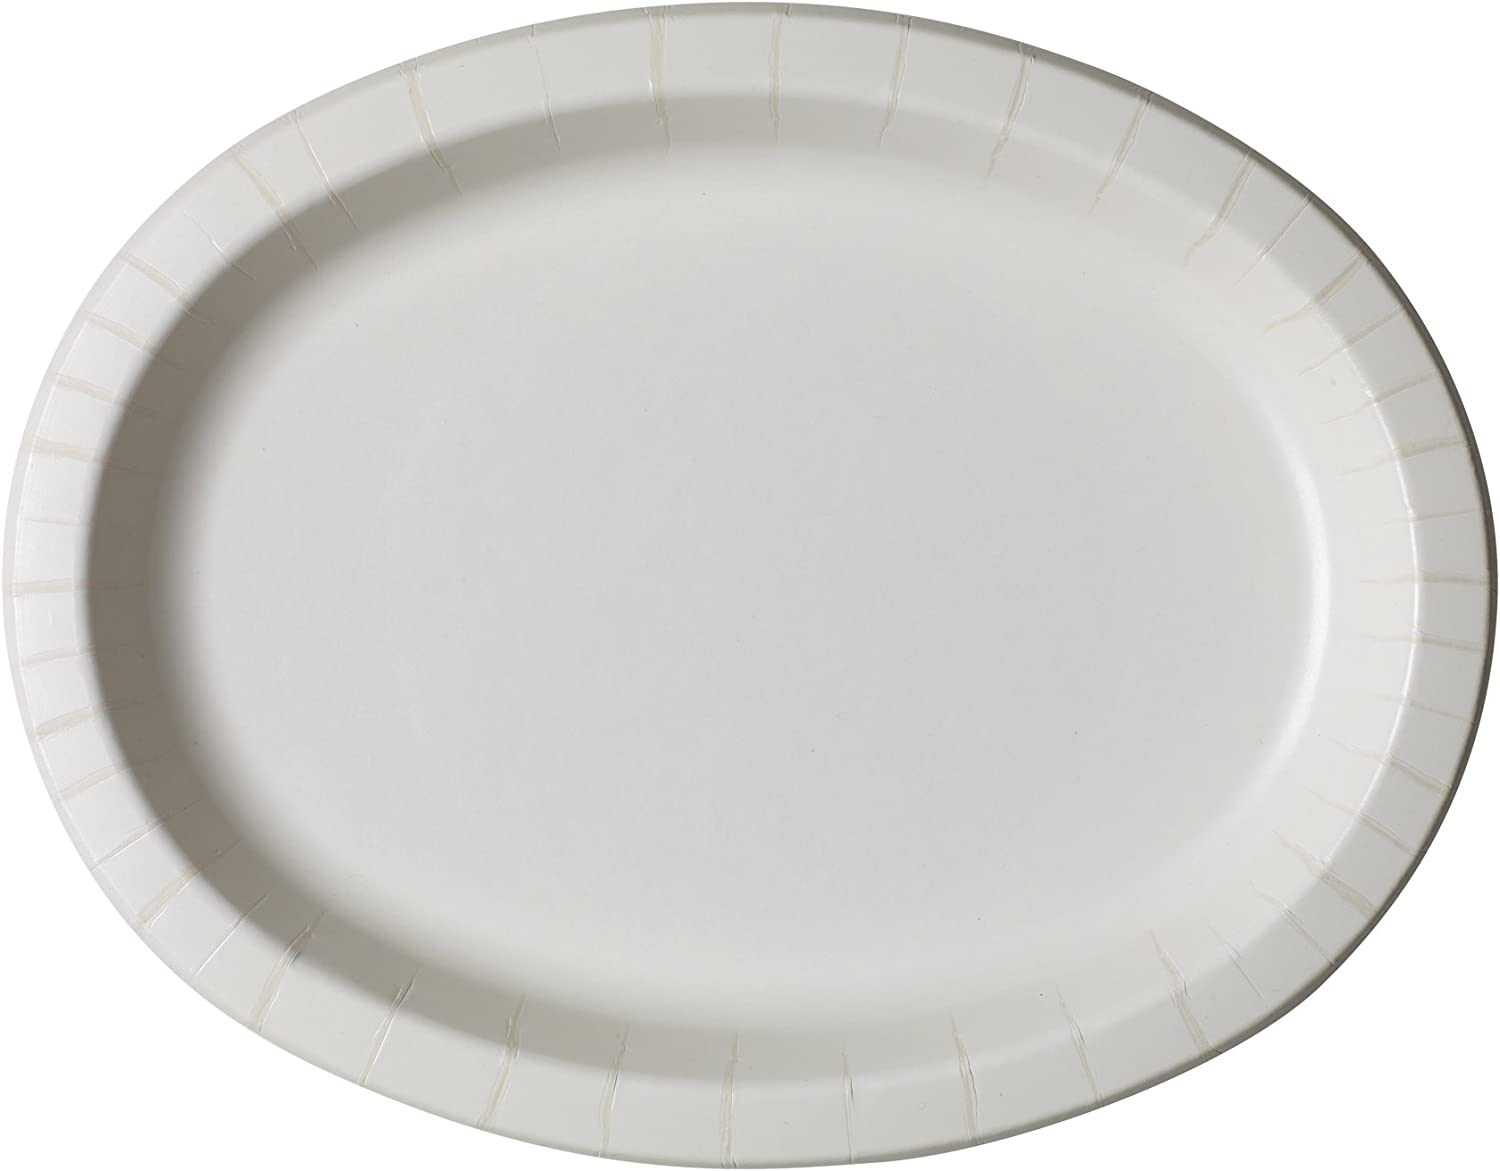 Dixie Ultra?Heavy-Weight Oval Paper Platter by GP PRO (Georgia-Pacfic), White, SX11PLW, 11  Length x 8.5  Width, 500 Count (125 Per Pack, 4 Packs Per Case)